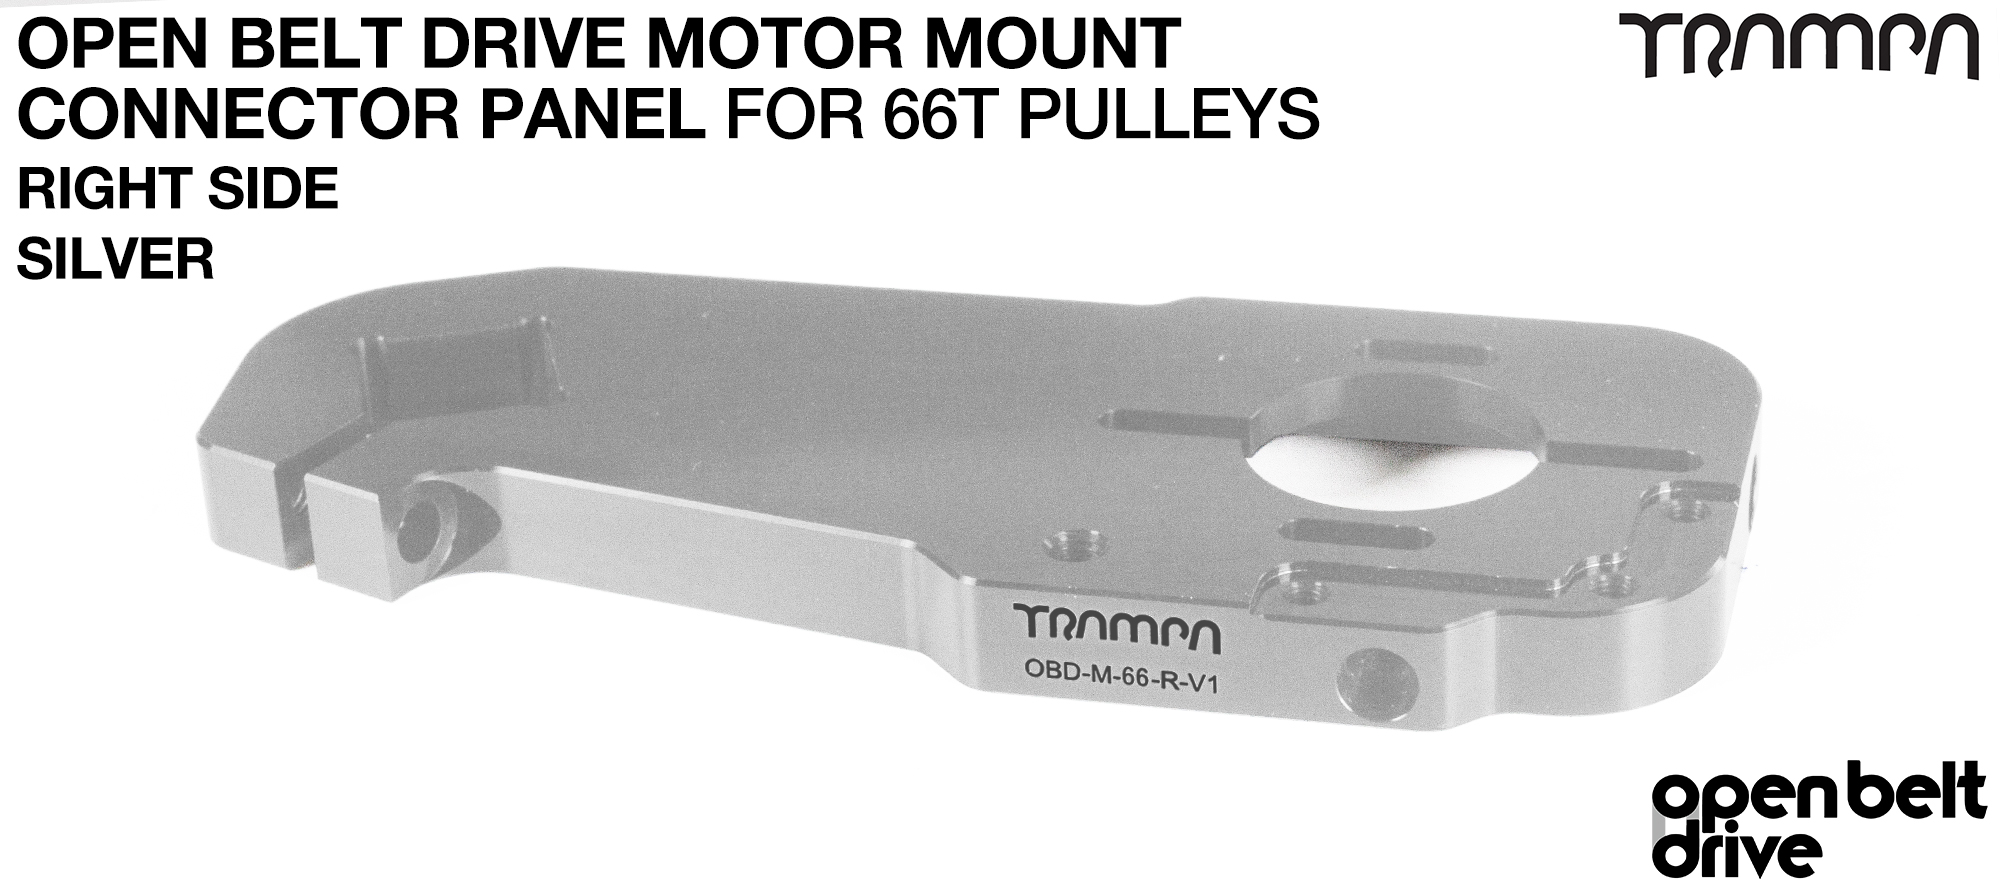 OBD Open Belt Drive Motor Mount Connector Panel for 66 tooth Pulleys - GOOFY - SILVER